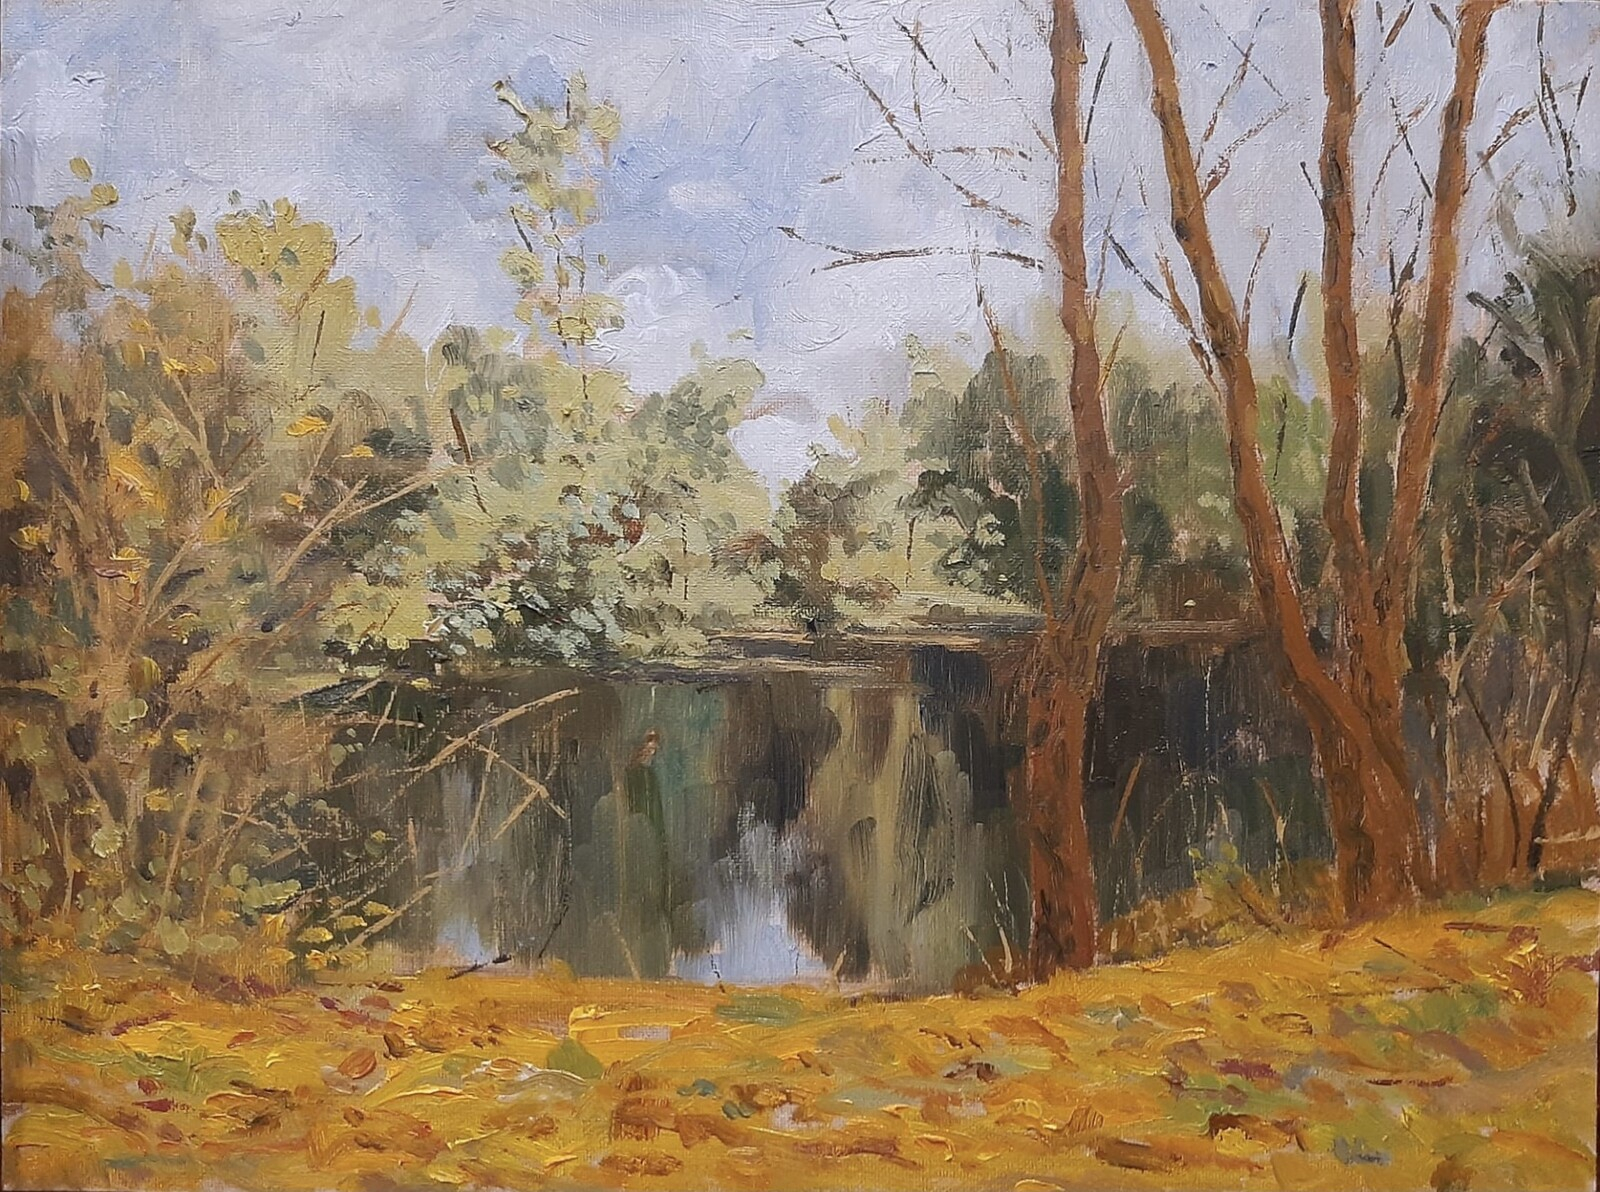 Autumn at the Tâmega River